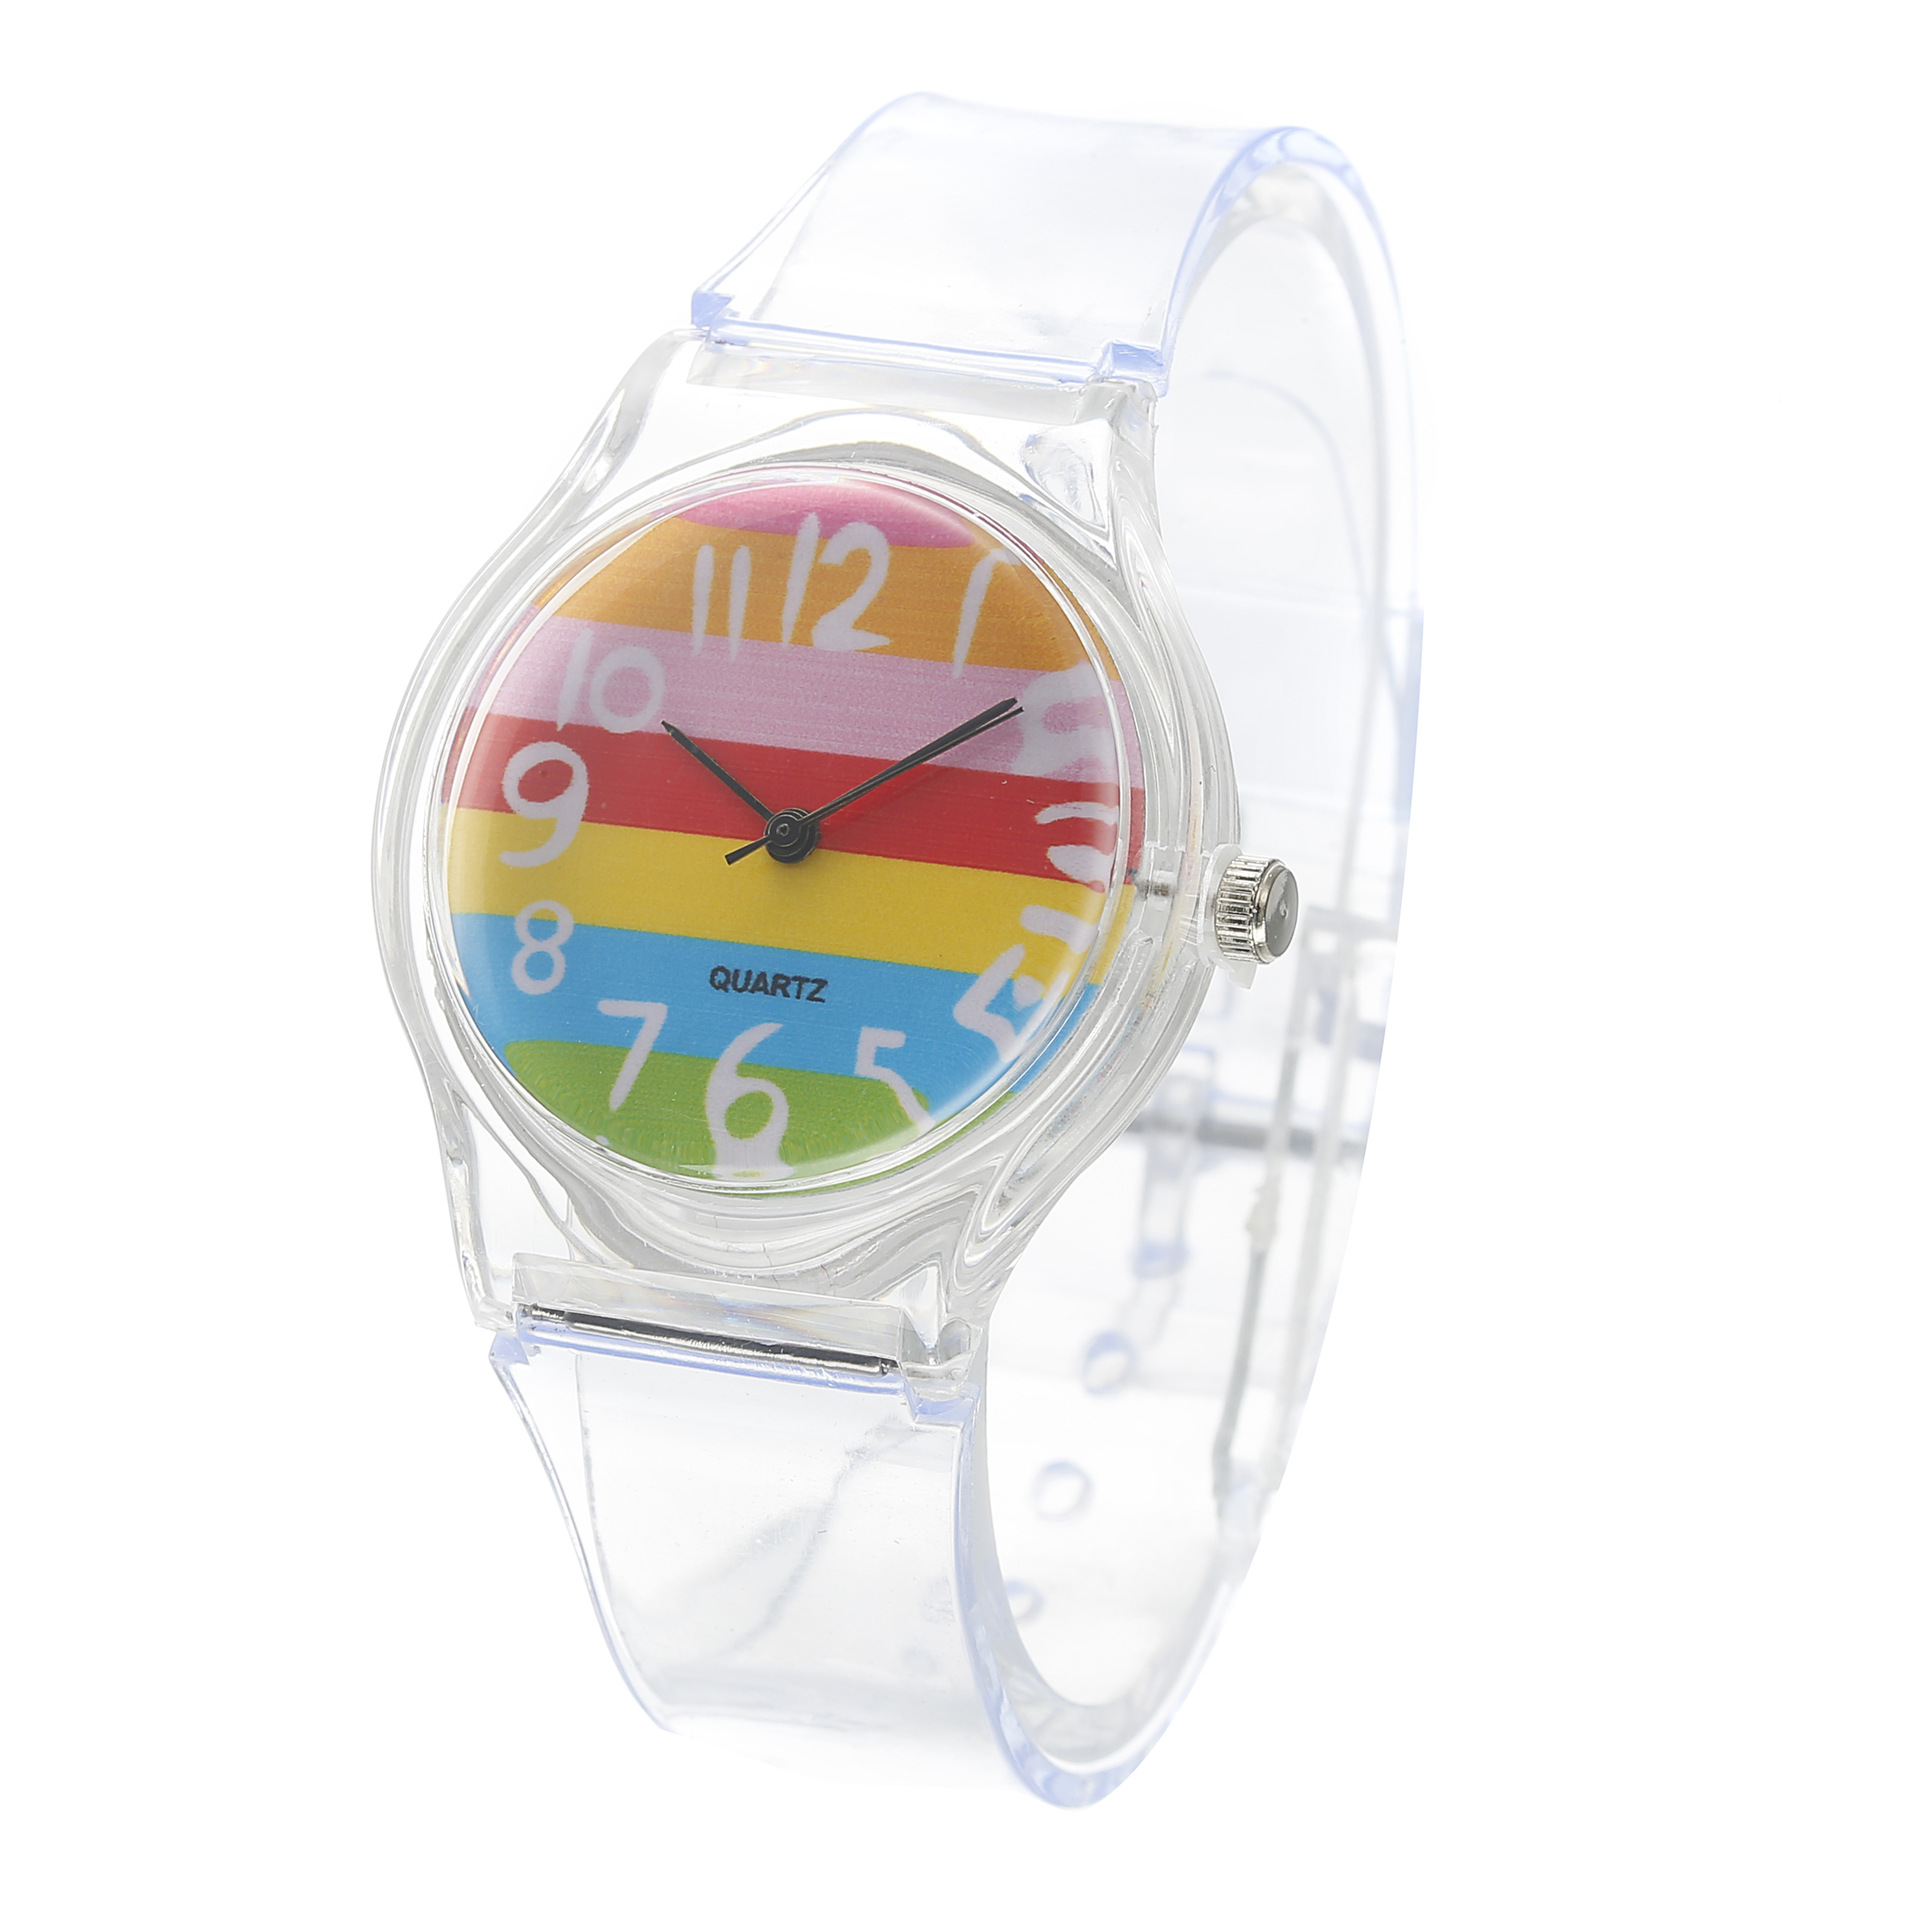 Clear silica gel watch simple mathematics 1 1 pattern student quartz watch Children 39 s wristwatches 1pcs in Children 39 s Watches from Watches